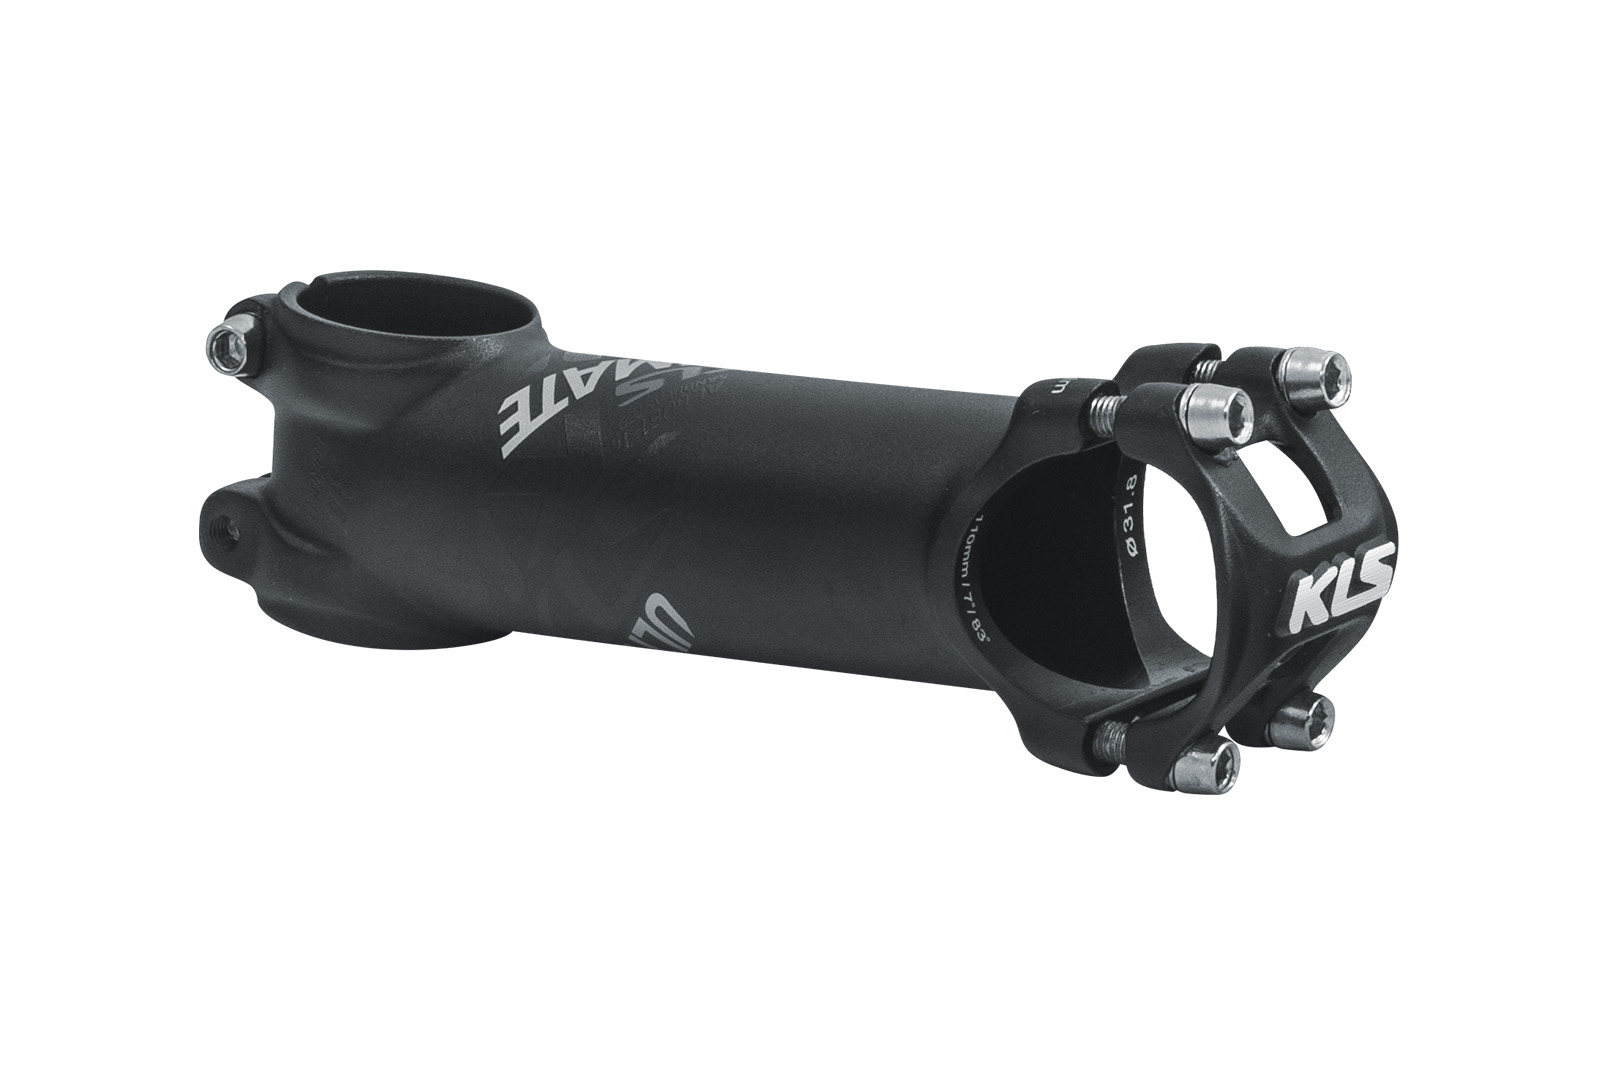 Představec KLS ULTIMATE XC 70 black 017, 110mm